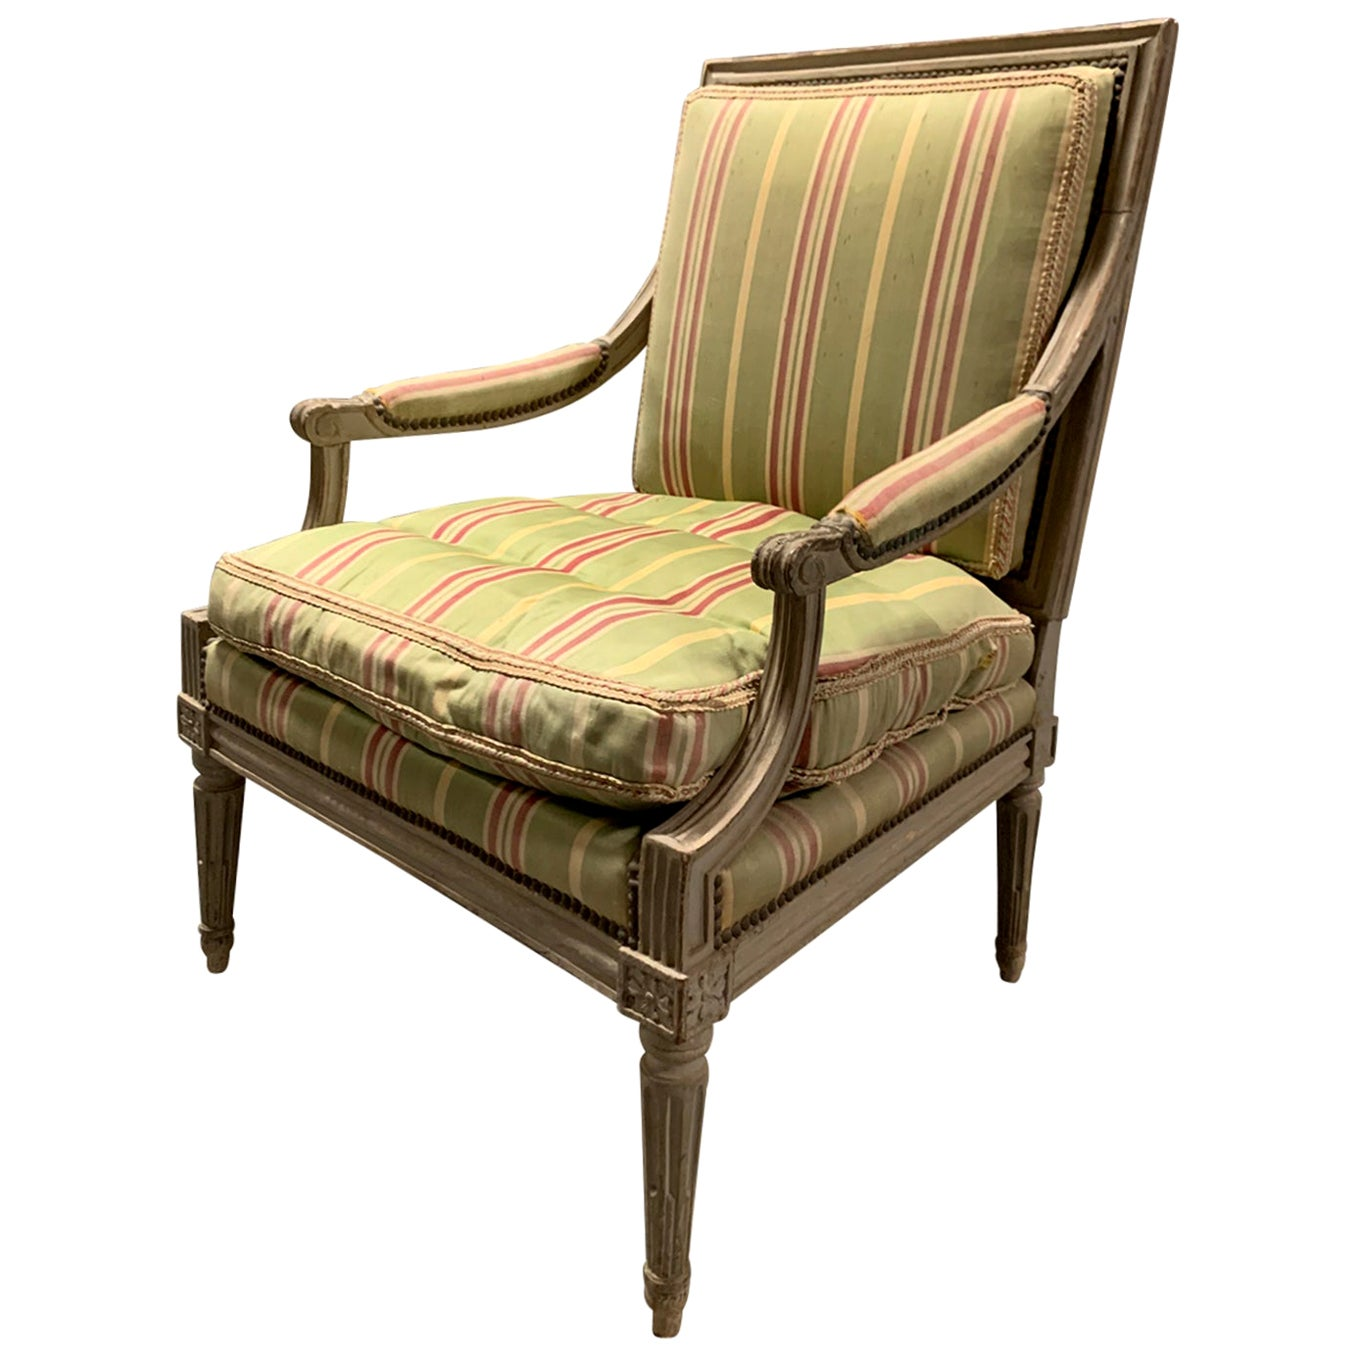 18th-19th Century Painted Louis XVI Style Armchair